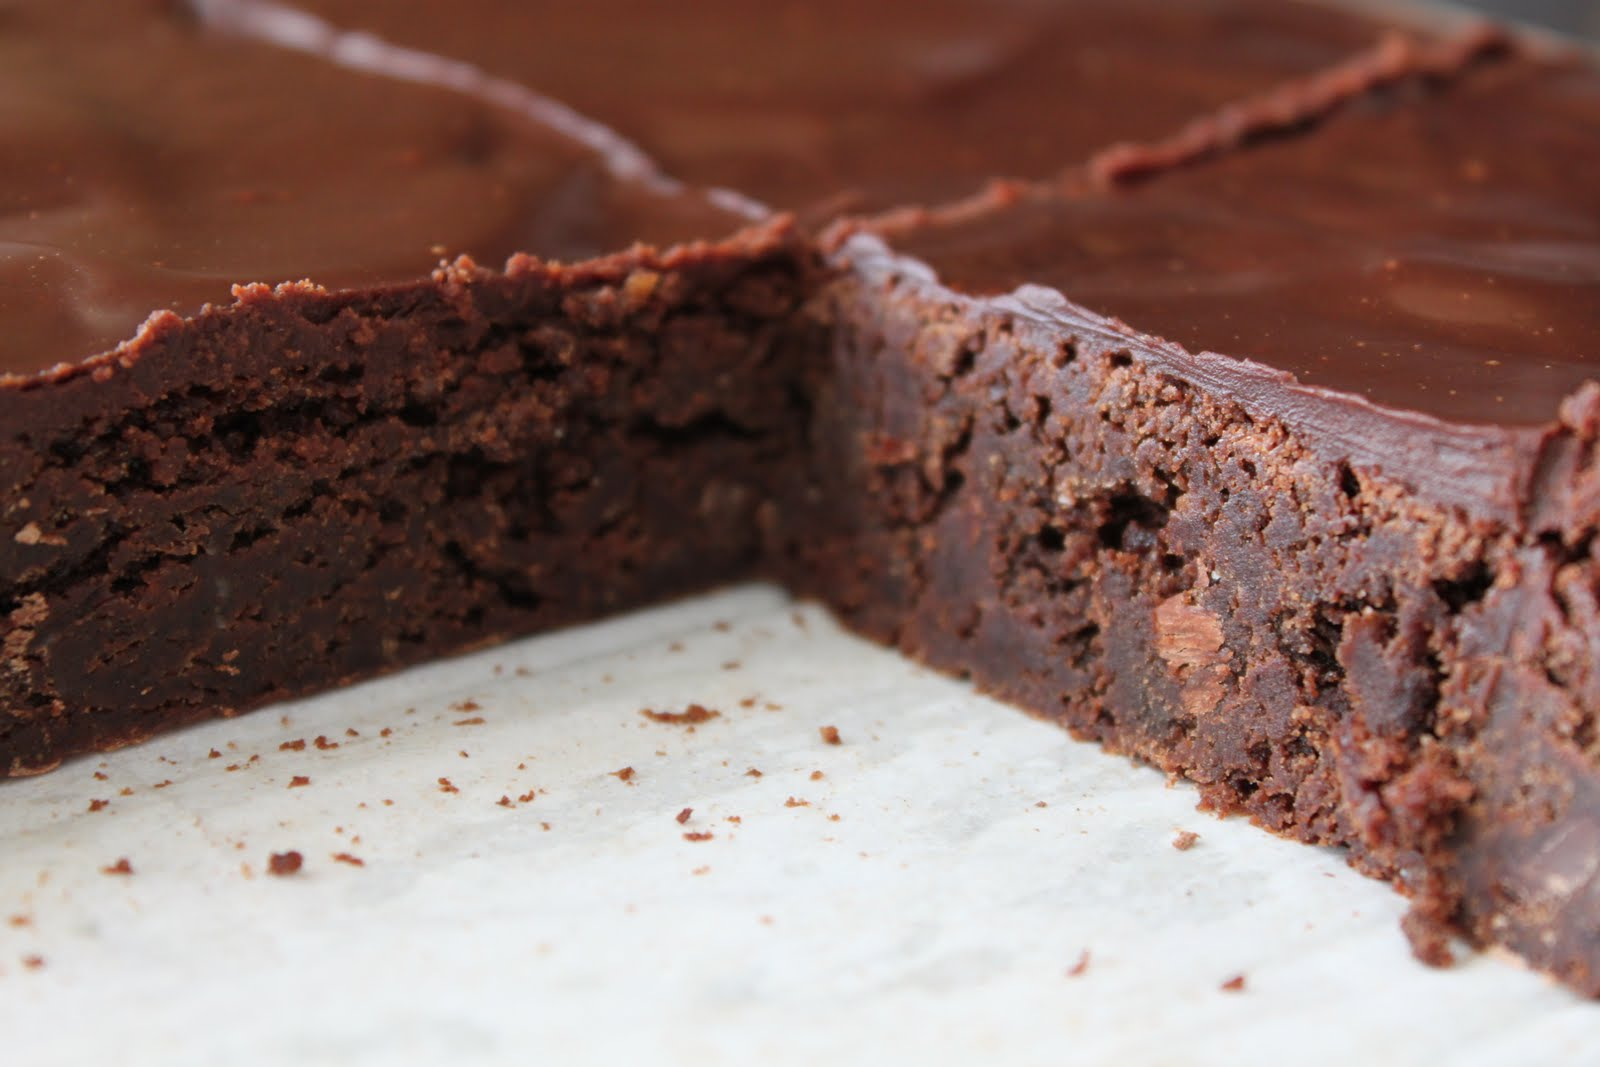 Barefoot Contessa Outrageous Brownies With Ganache Frosting